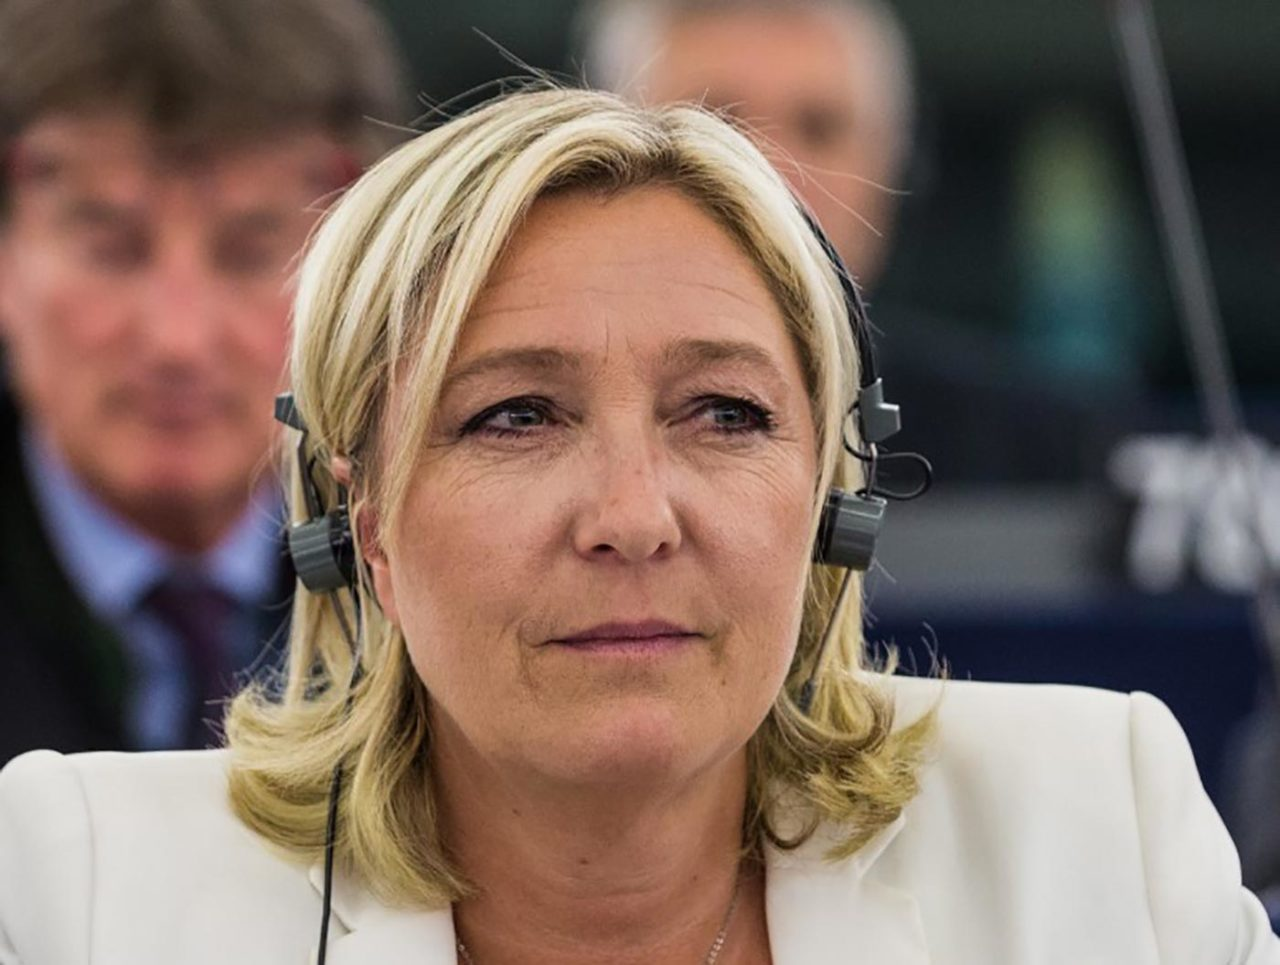 https://thesubmarine.it/wp-content/uploads/2017/02/Marine_le_Pen_1er_juillet_2014_cropped-1280x965.jpg